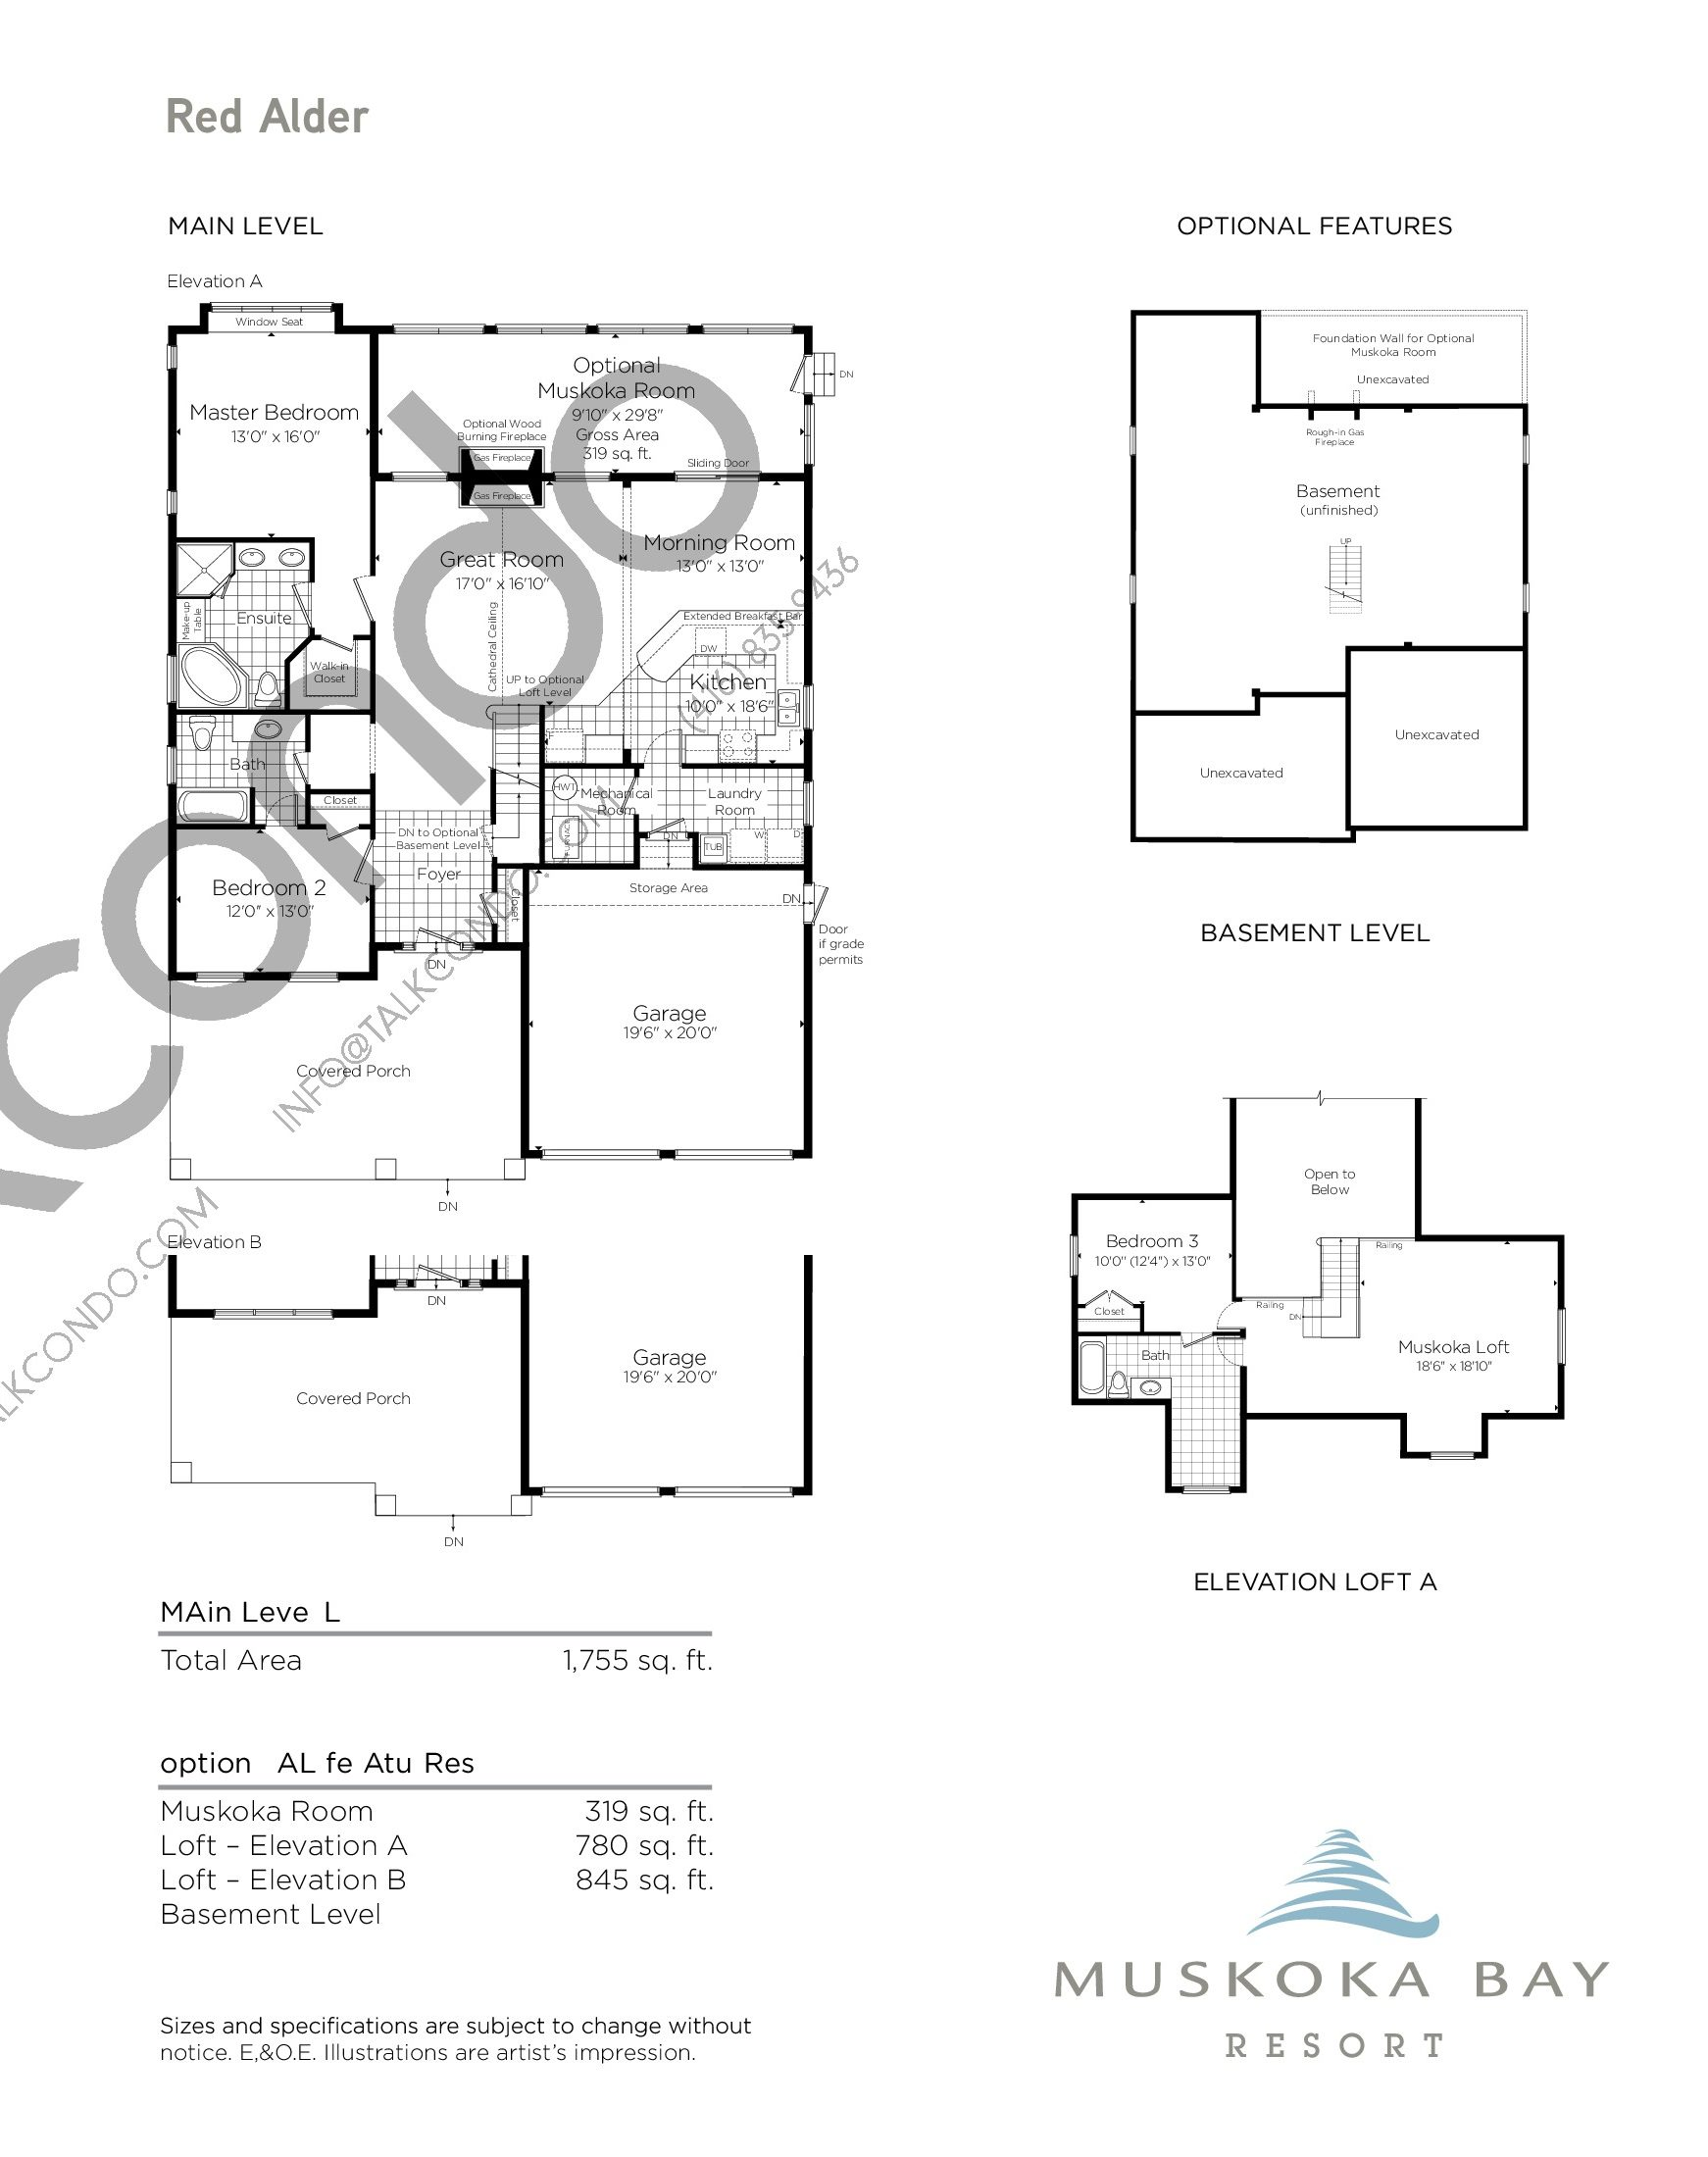 Red Alder Floor Plan at Muskoka Bay Resort - 2919 sq.ft